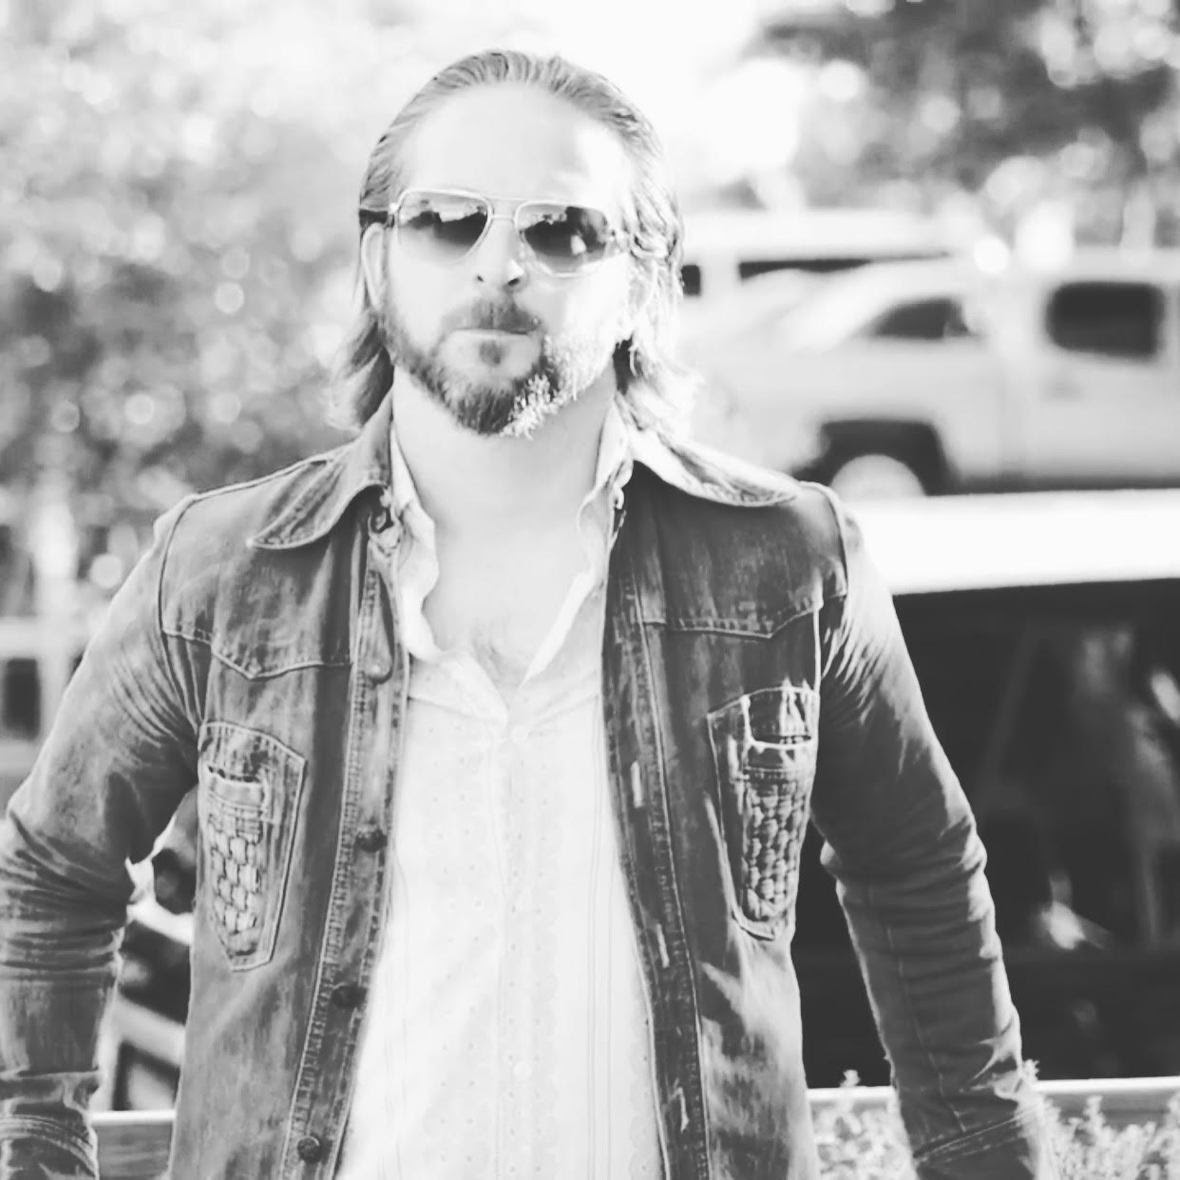 DAVID MICHAEL GEORGE RELEASES NEW ALBUM 1,000 YARD STARE; SETS ALBUM RELEASE SHOW 5/26 IN DALLAS